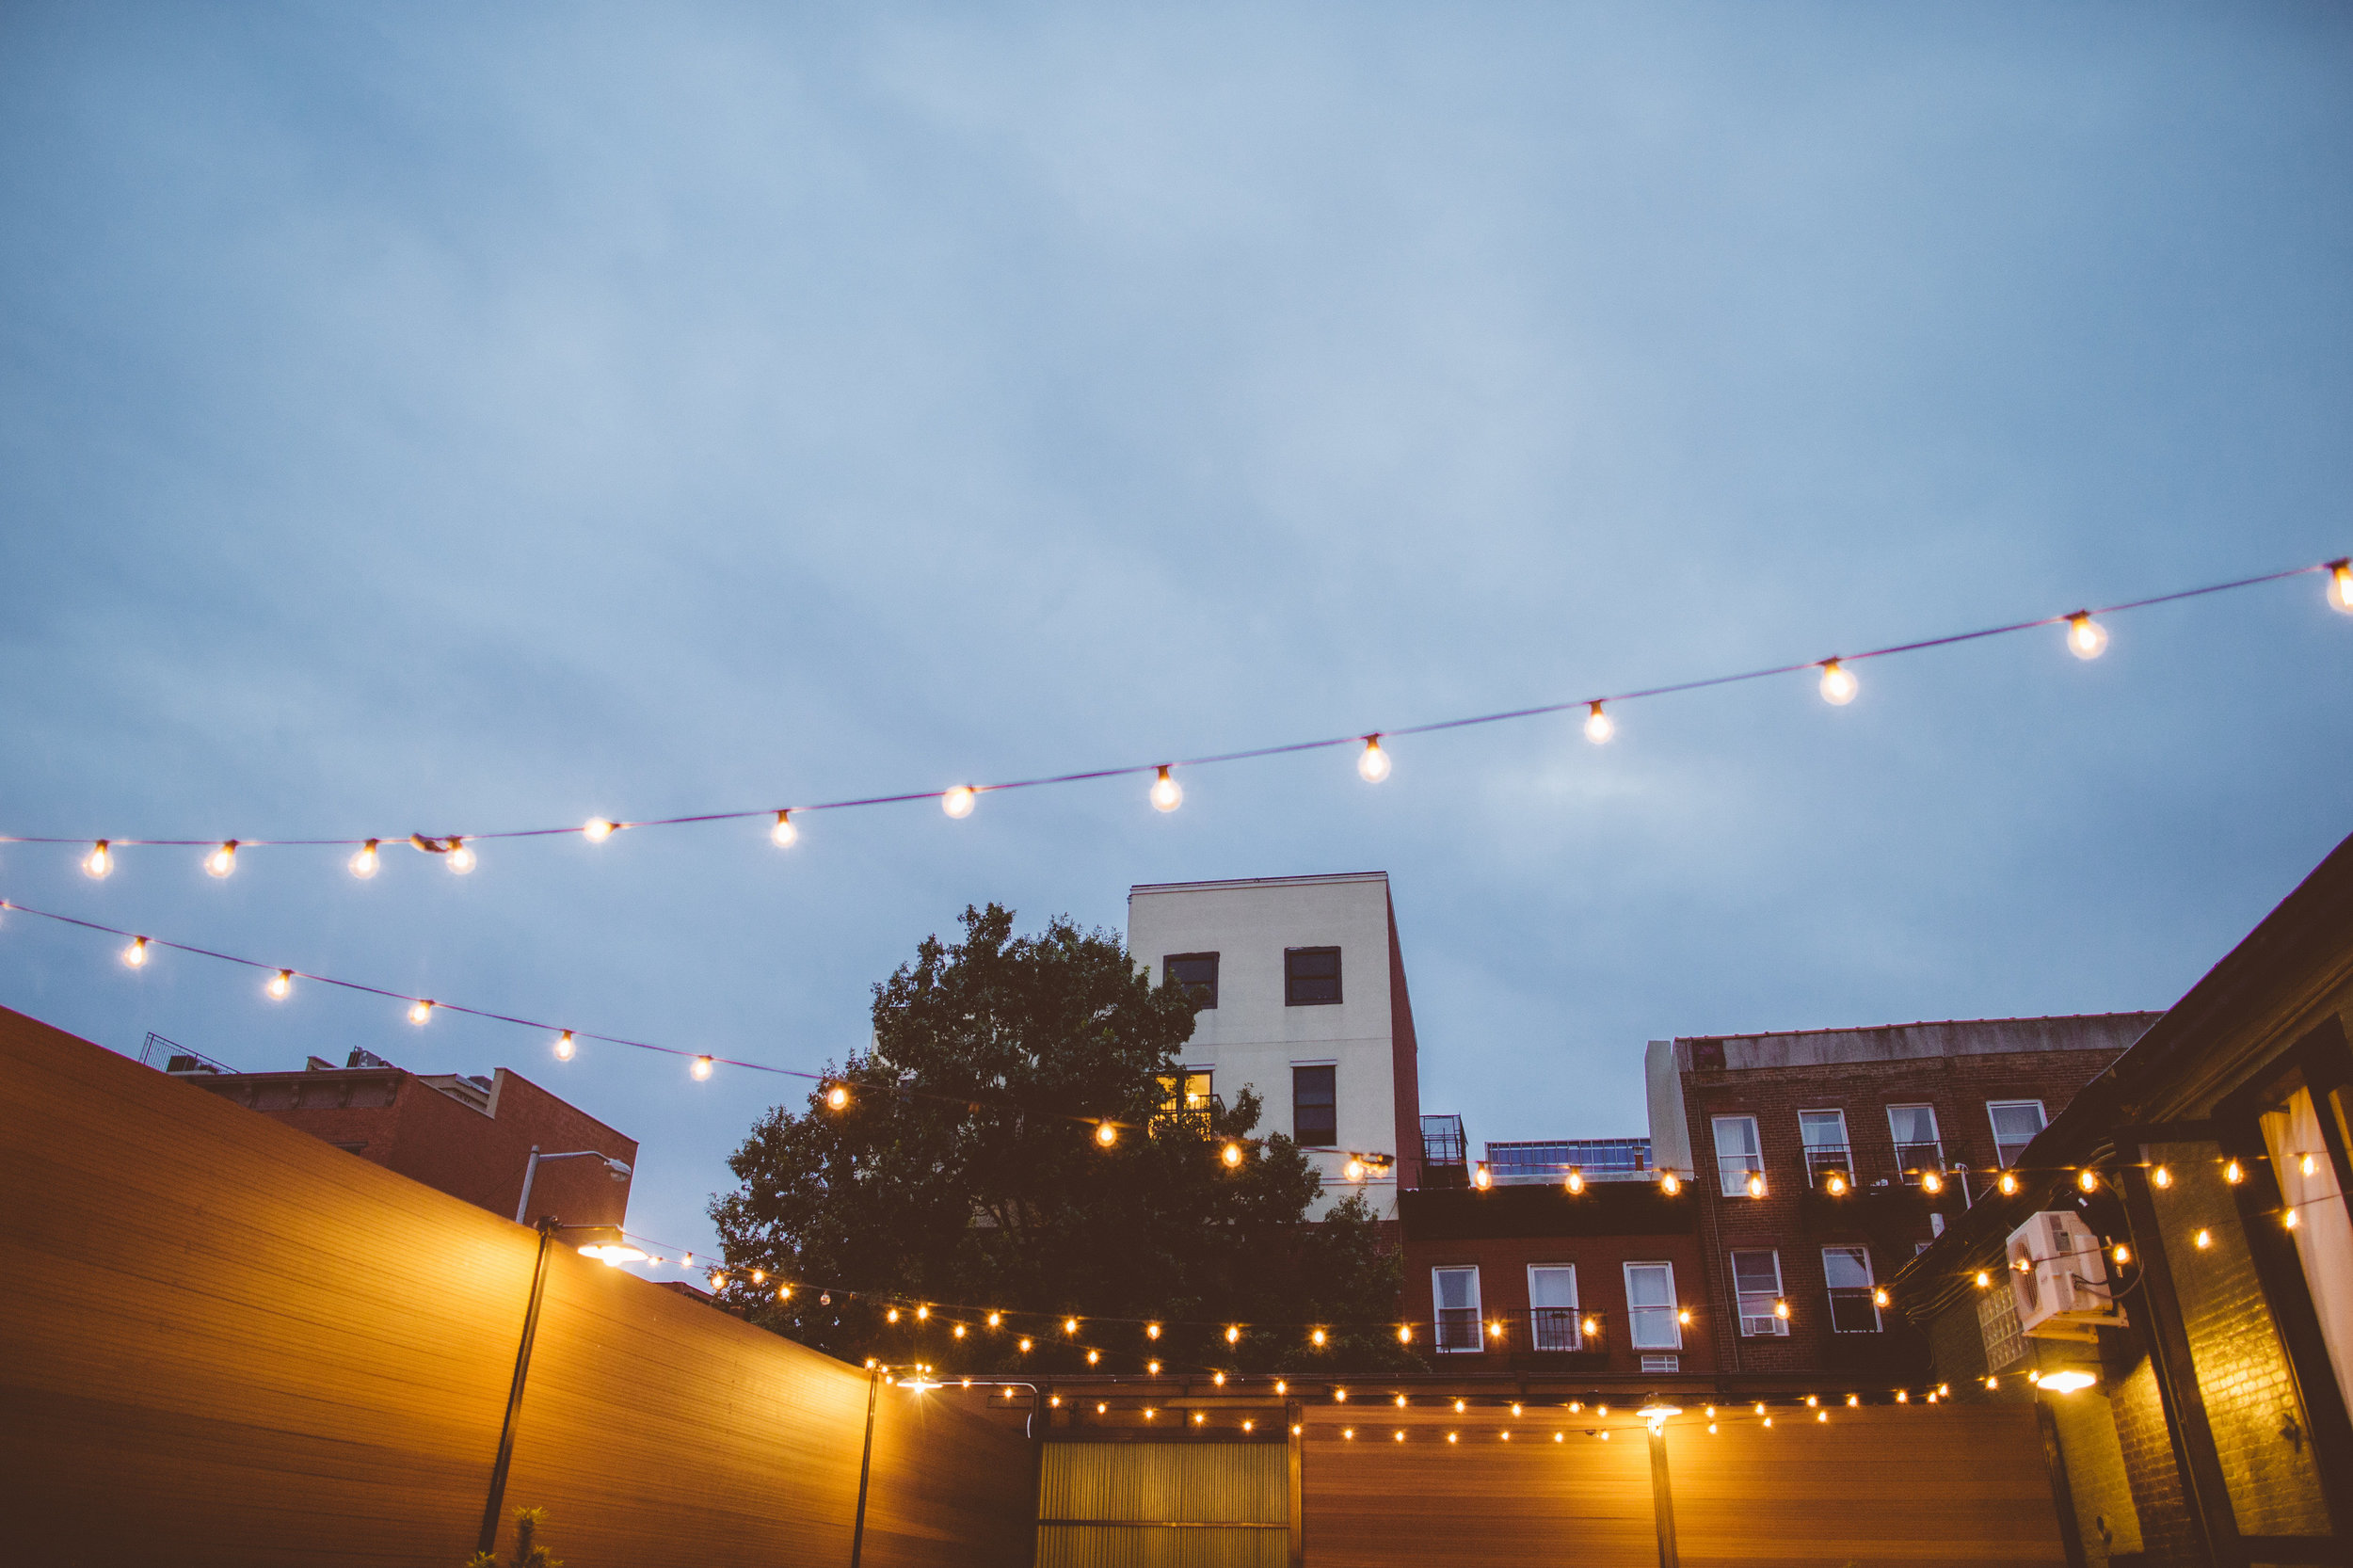 Watch ' Dirty Dancing ' underneath the stars on July 15 + 16 at the Green Building. Don't forget your blanket! Photo: JBM Weddings.